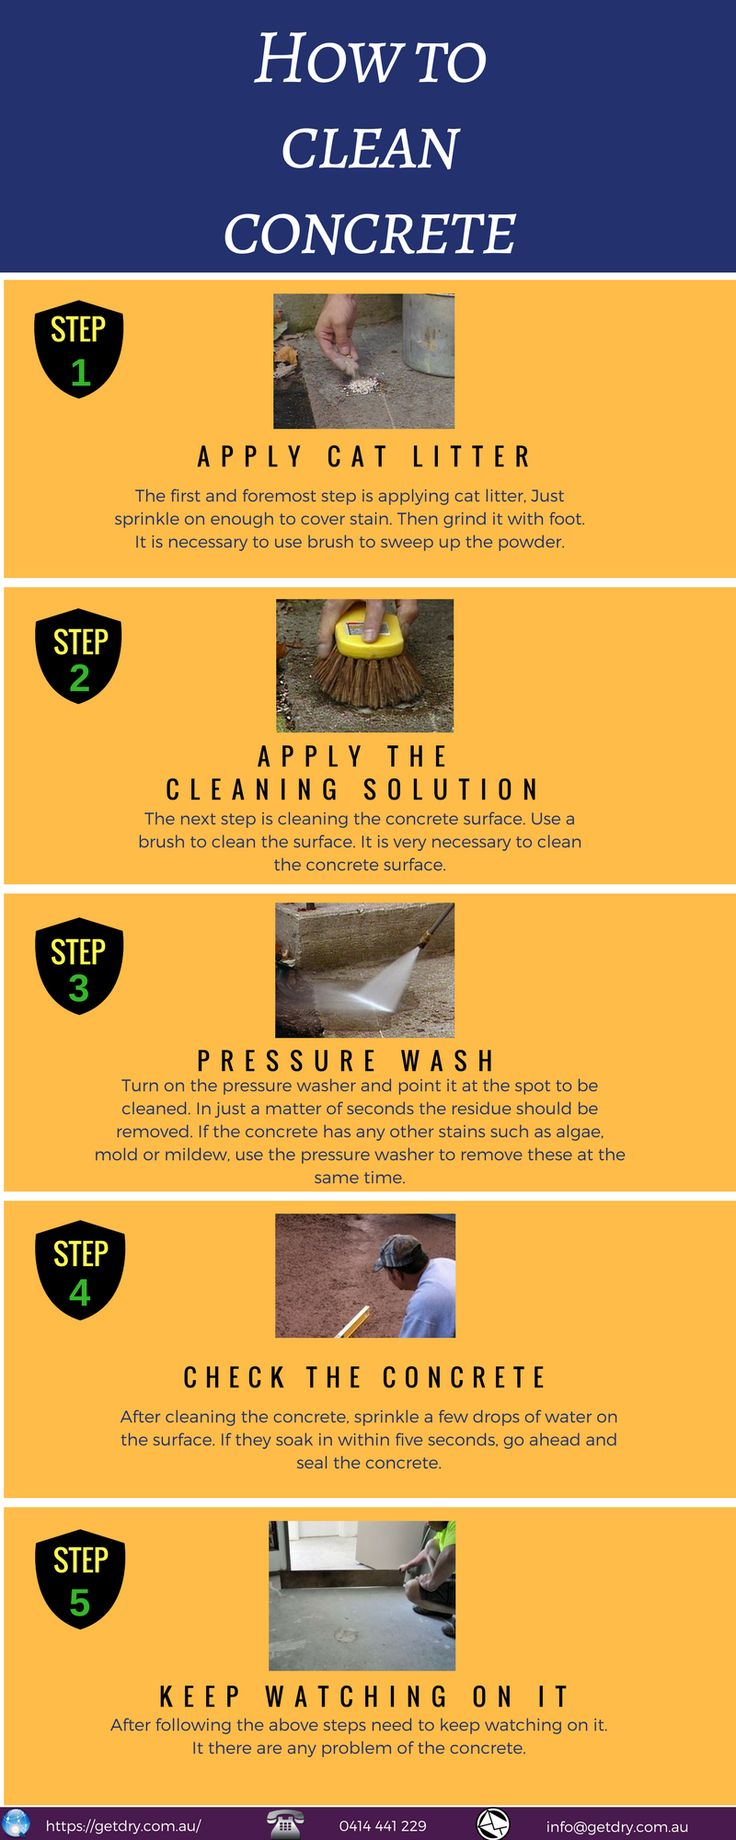 Here you can find some necessary steps to #clean #concrete.